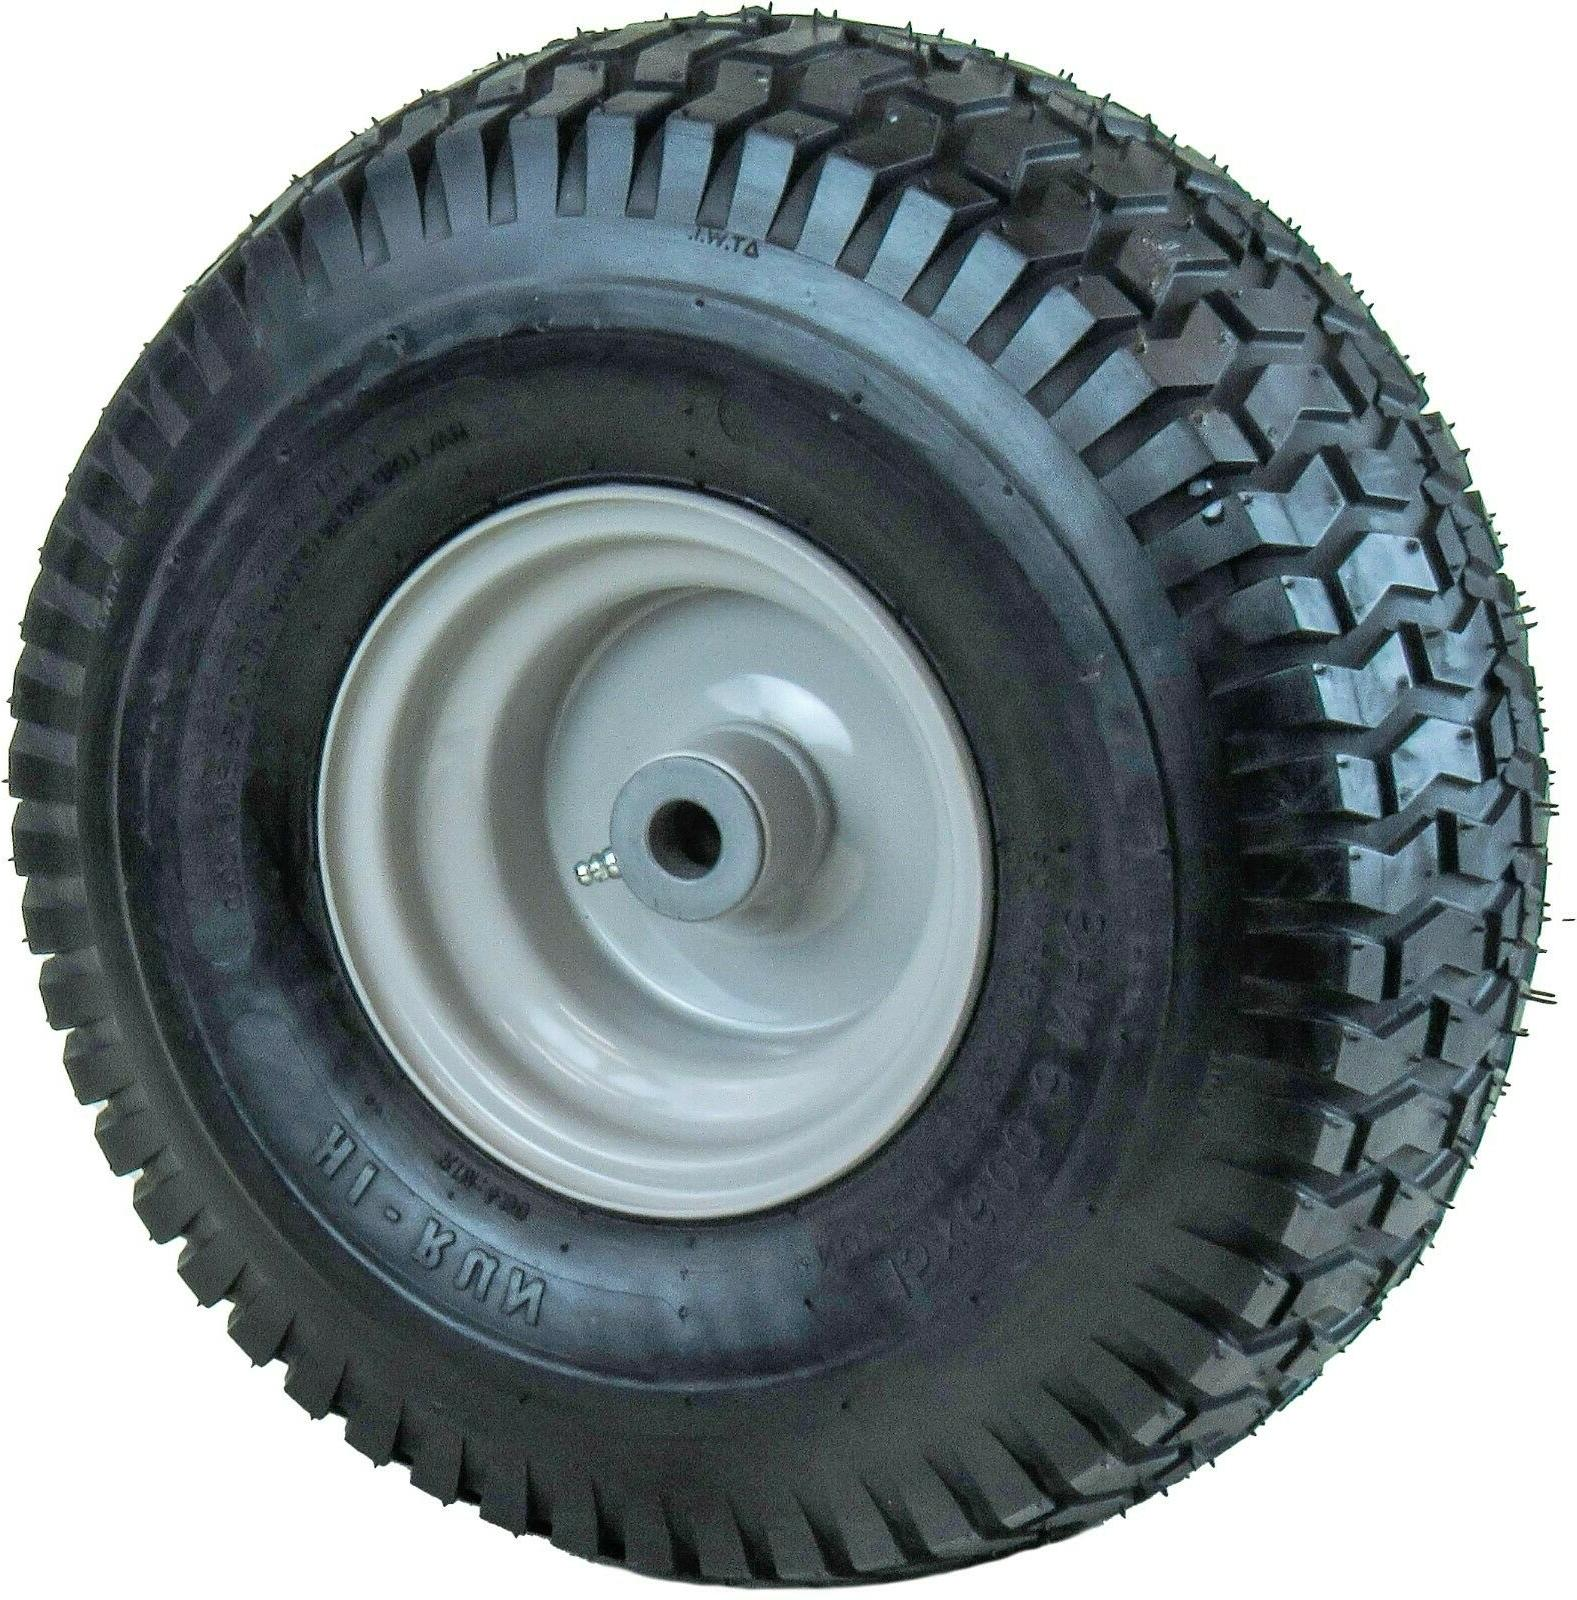 15X6.00-6 SU12 HI-RUN on solid with and